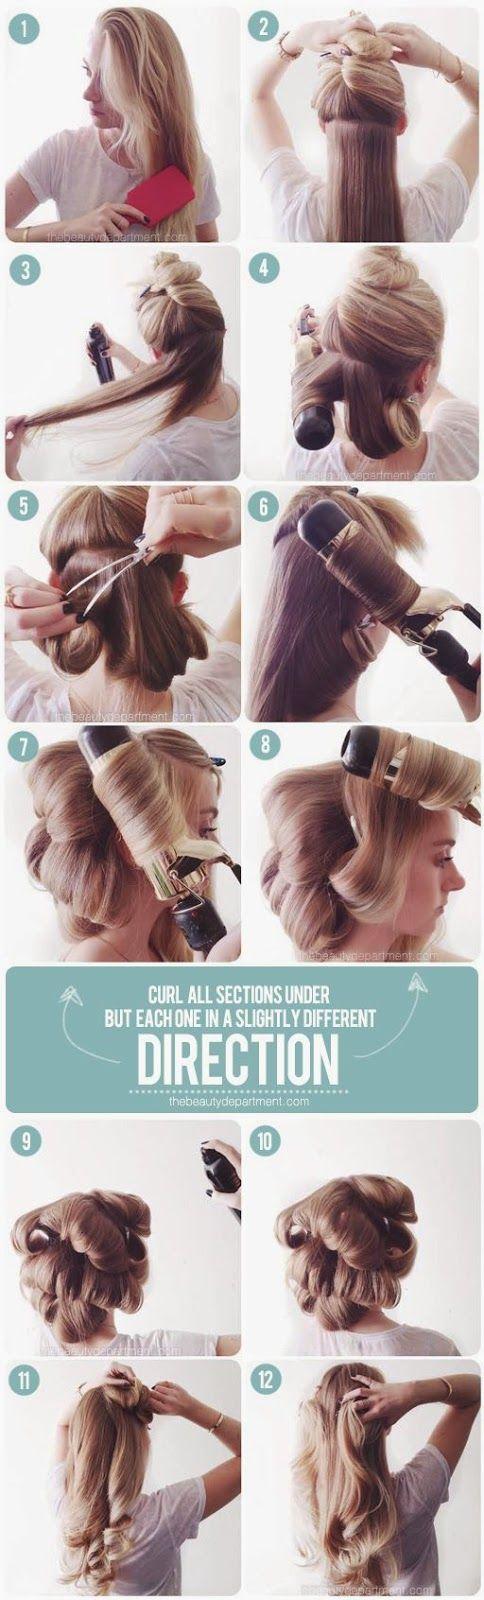 Manucure And Makeup: How To Fake a Blowdry With Curler